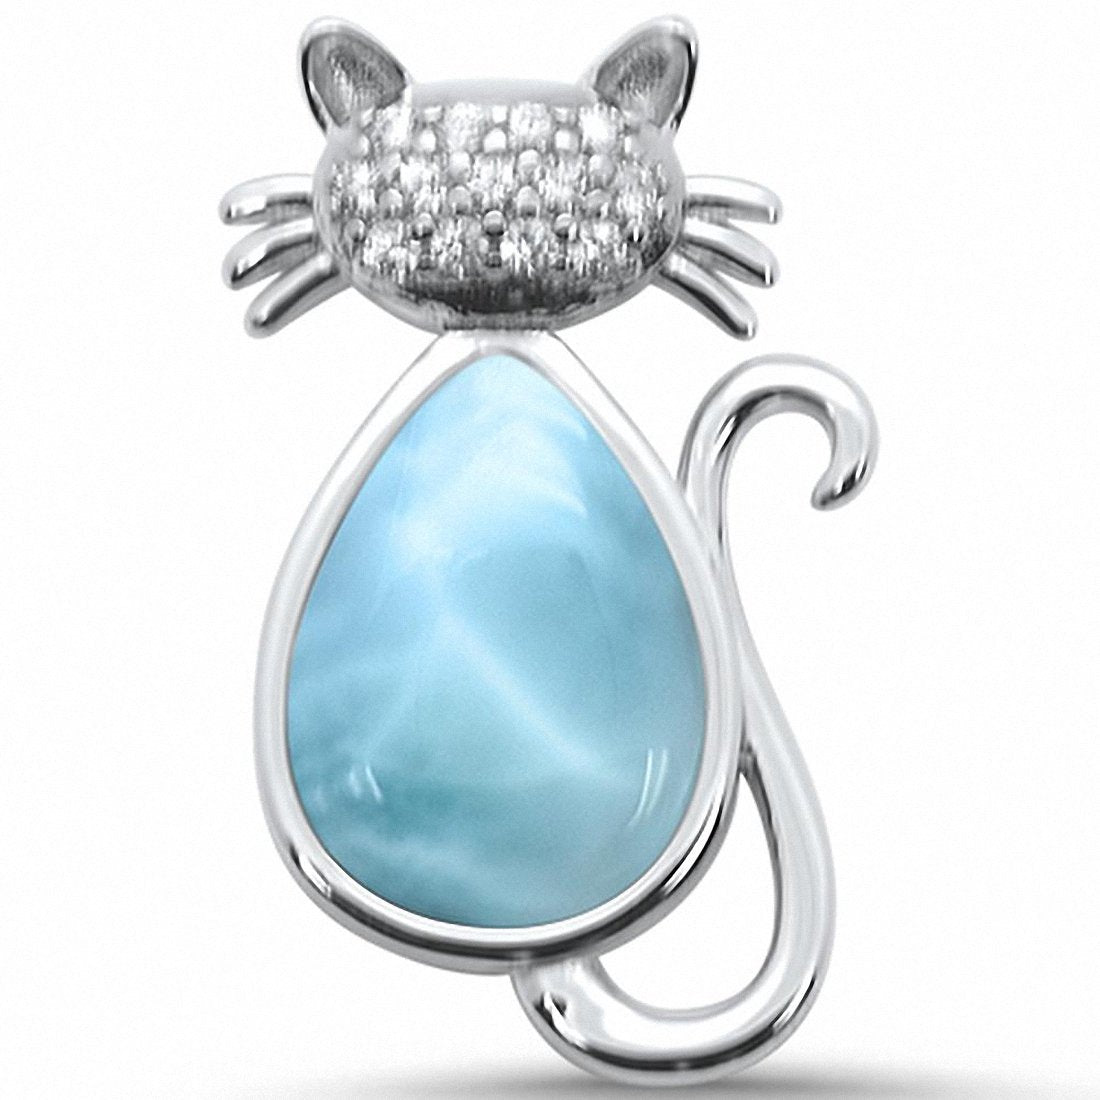 Cat Pendant Charm Round Cubic Zirconia Created Opal Solid 925 Sterling Silver Choose Color